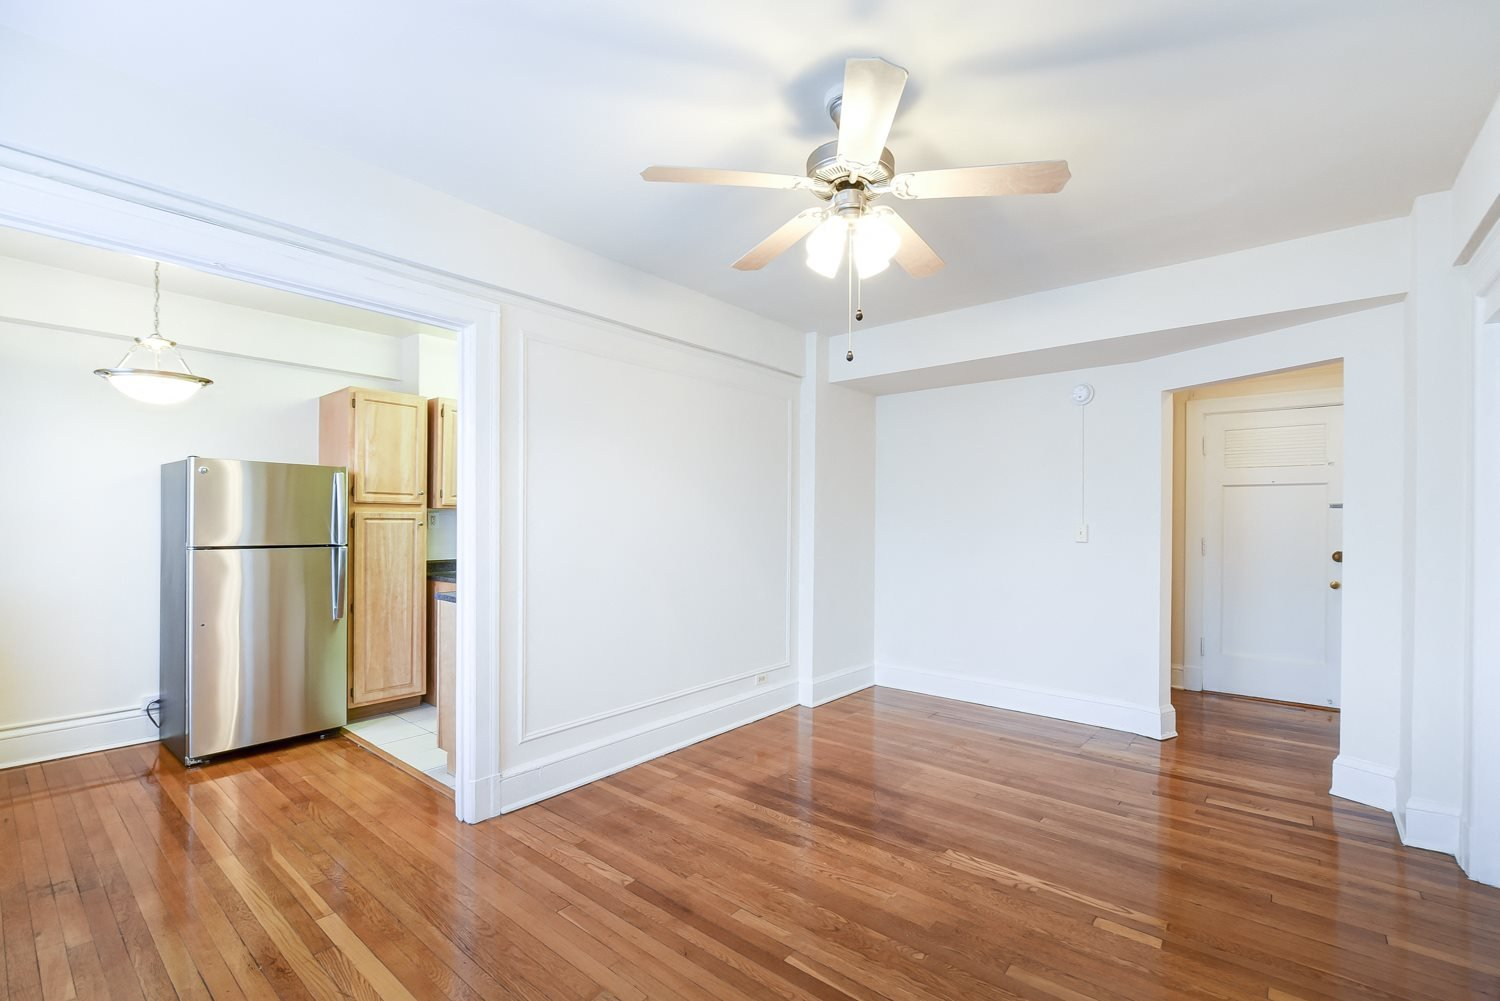 Wakefield-Hall-Living-Room-and-Dining-Room